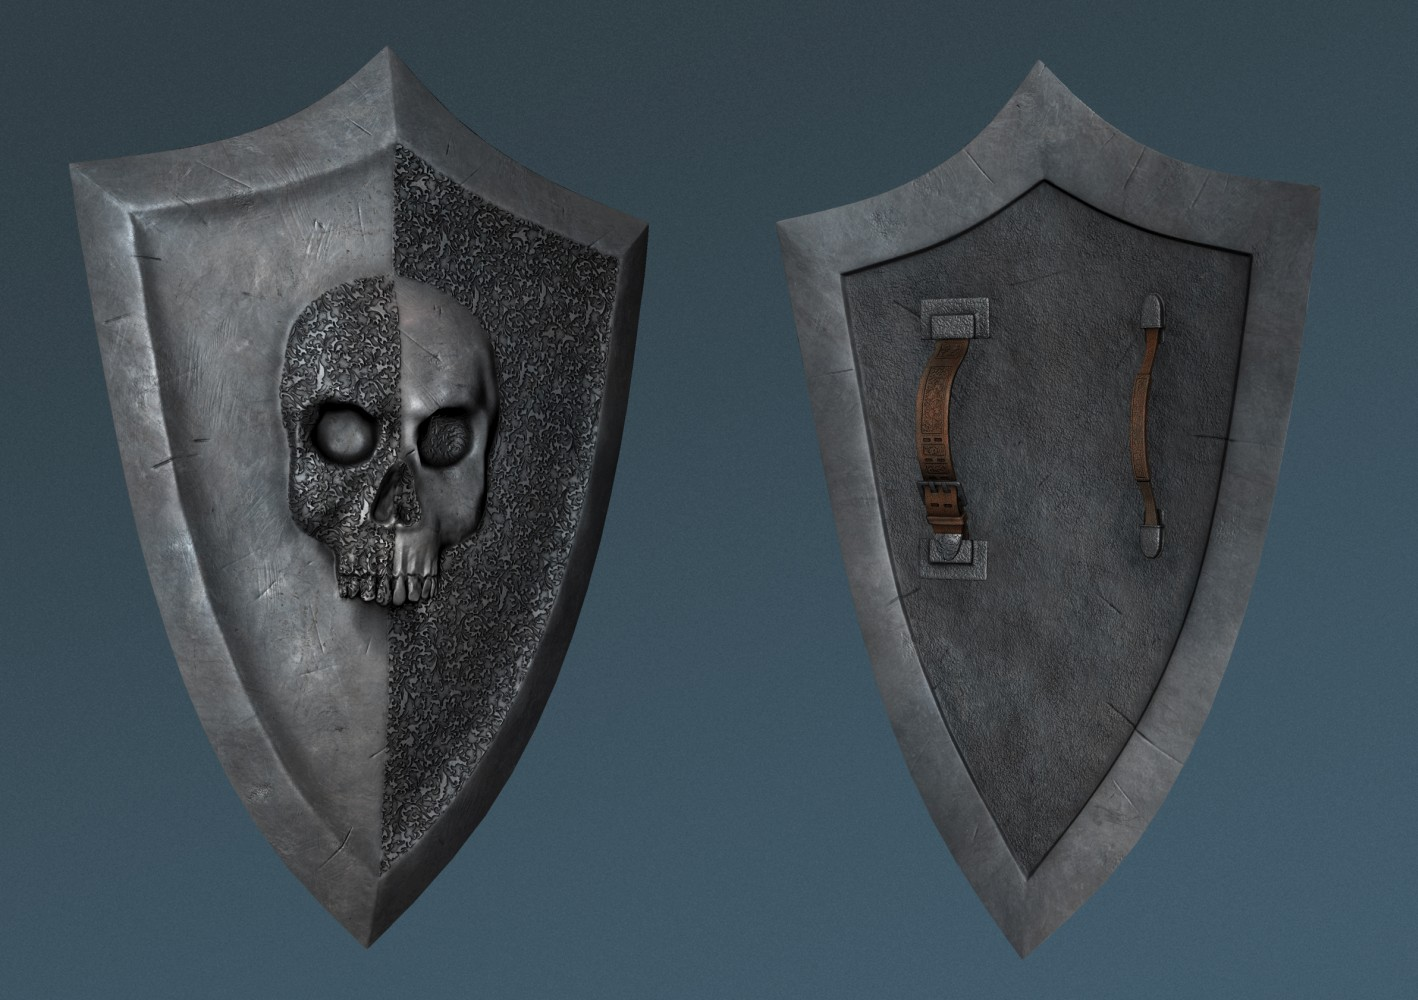 Silver Shield image - MediEvil: Hero of Gallowmere mod for Elder